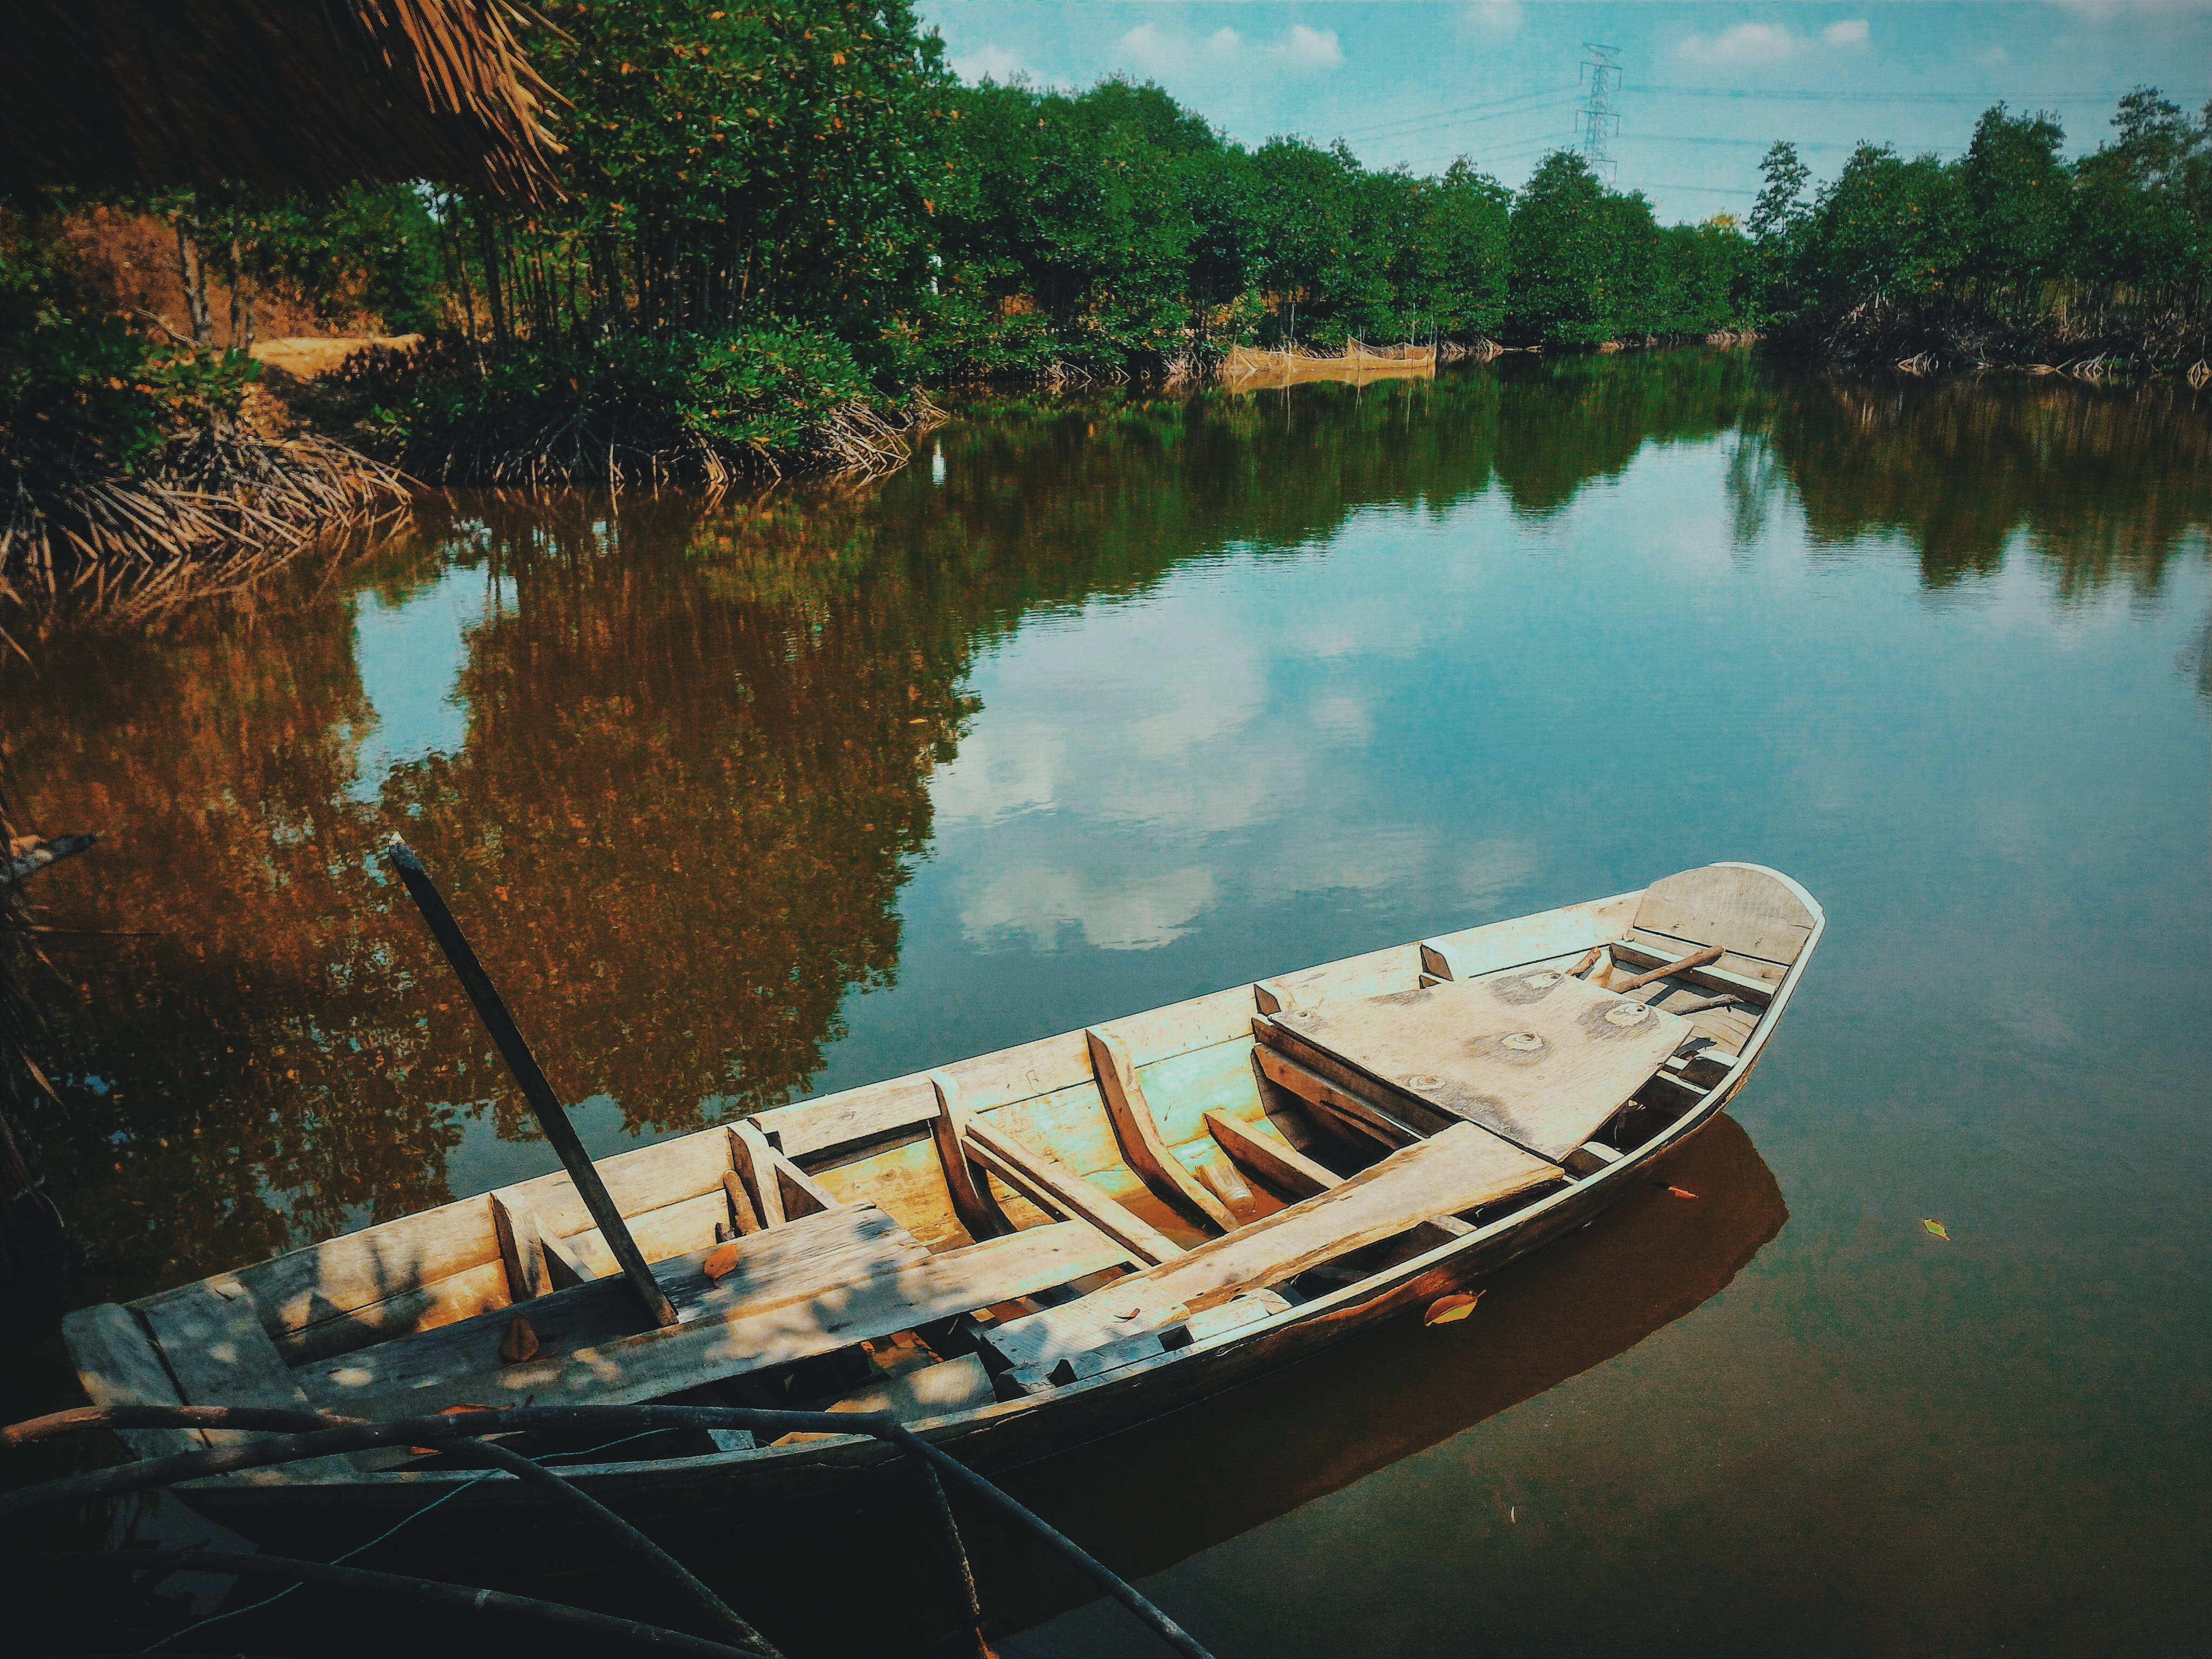 Brown Canoe Boat on Body of Water